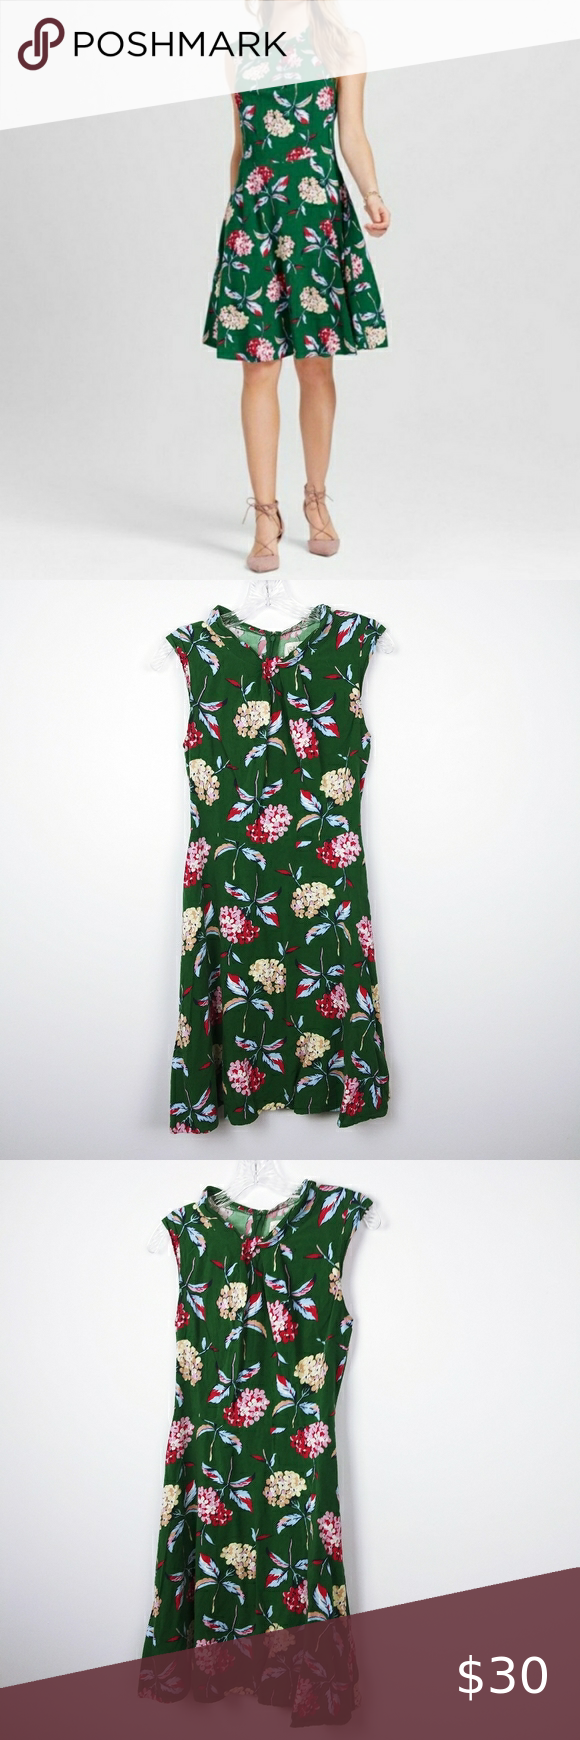 Isani For Target Green Floral Dress Size Small Green Floral Dress Floral Dress Dresses [ 1740 x 580 Pixel ]